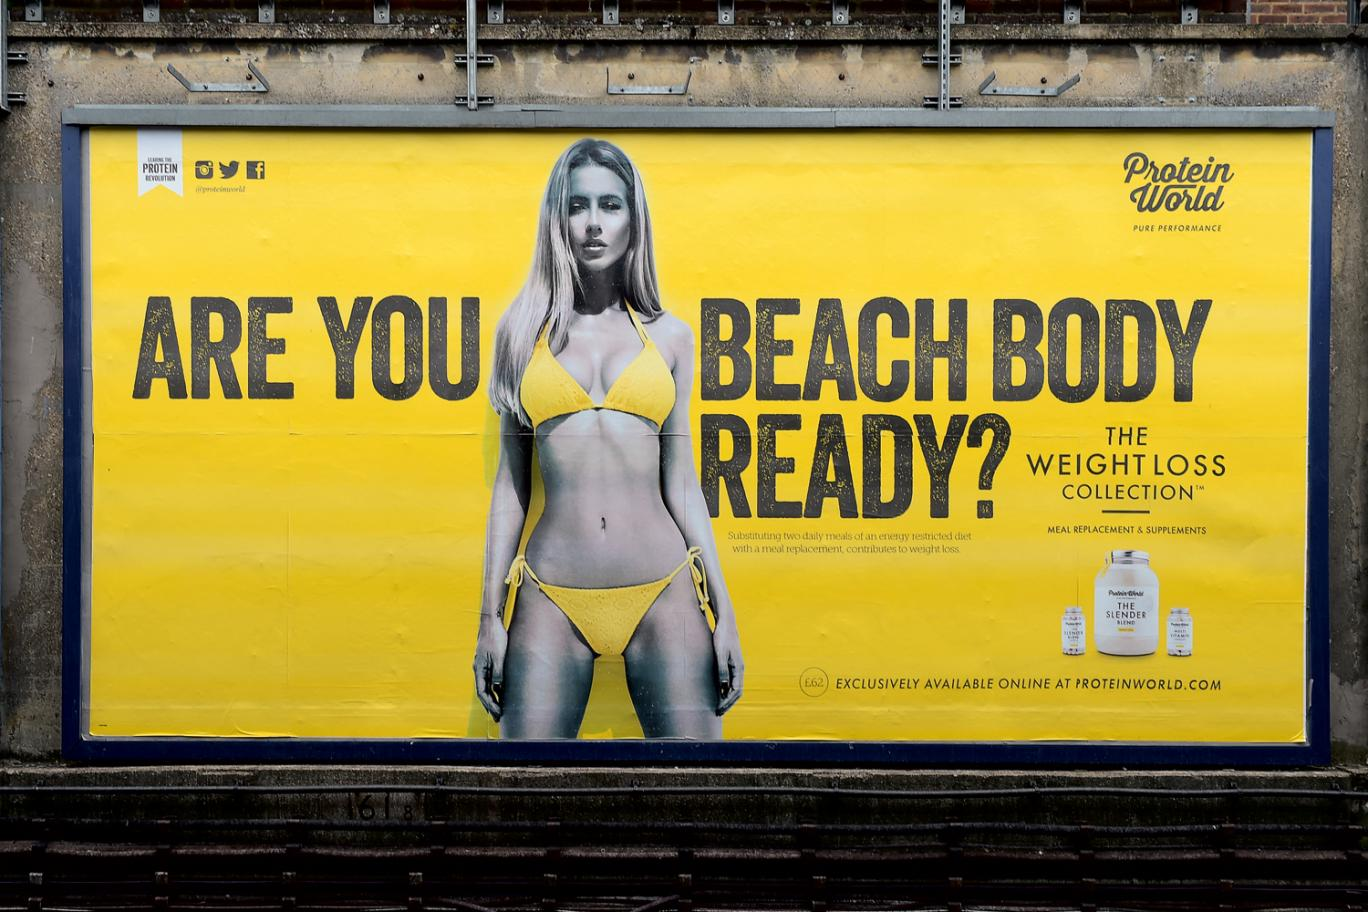 Protein World Evening Standard